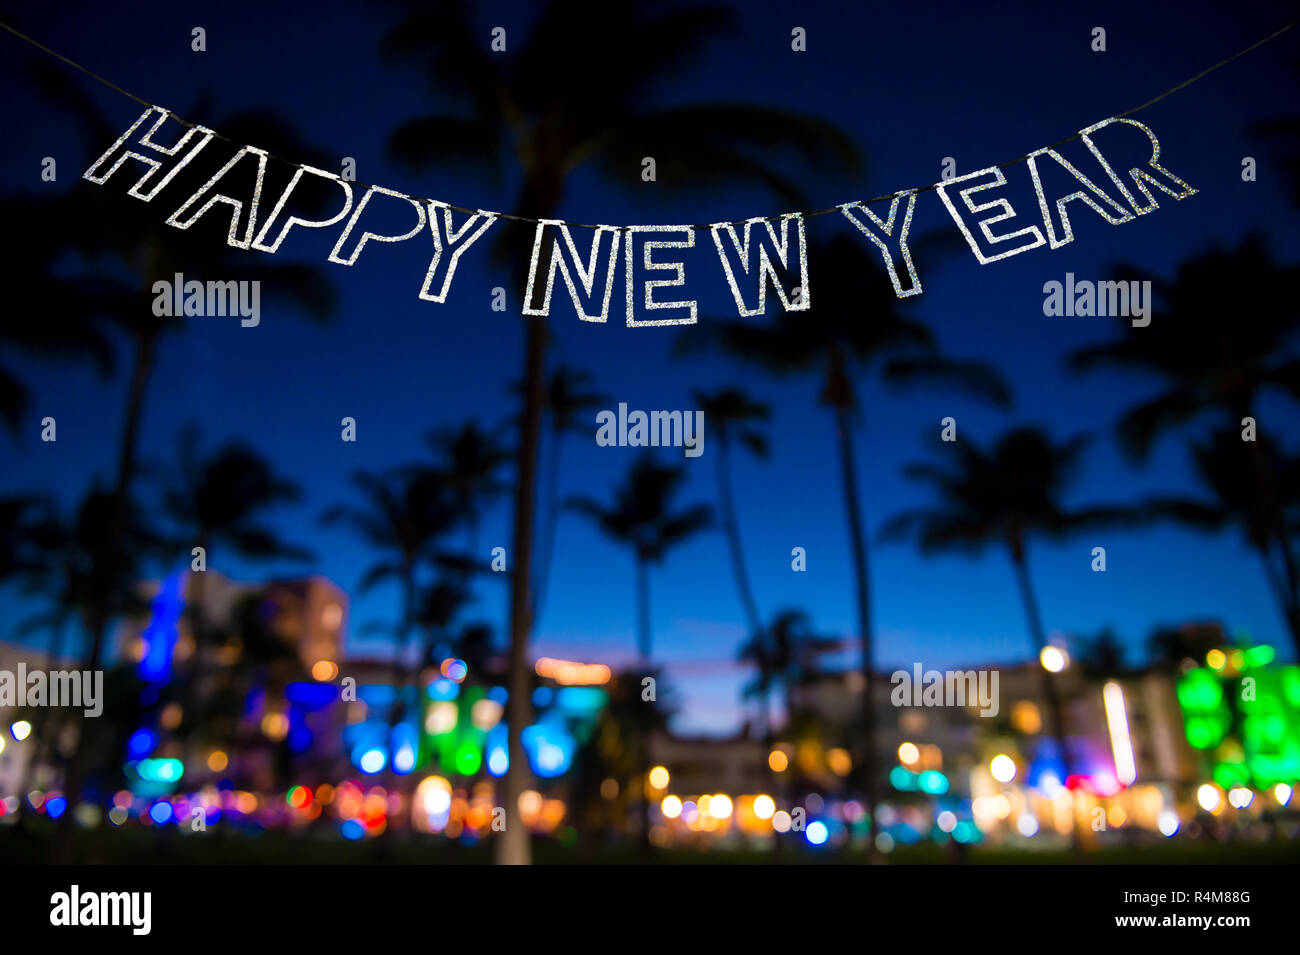 happy new year message hanging in glittery party bunting above tropical palm trees of the glowing neon lights of the skyline of miami beach florida